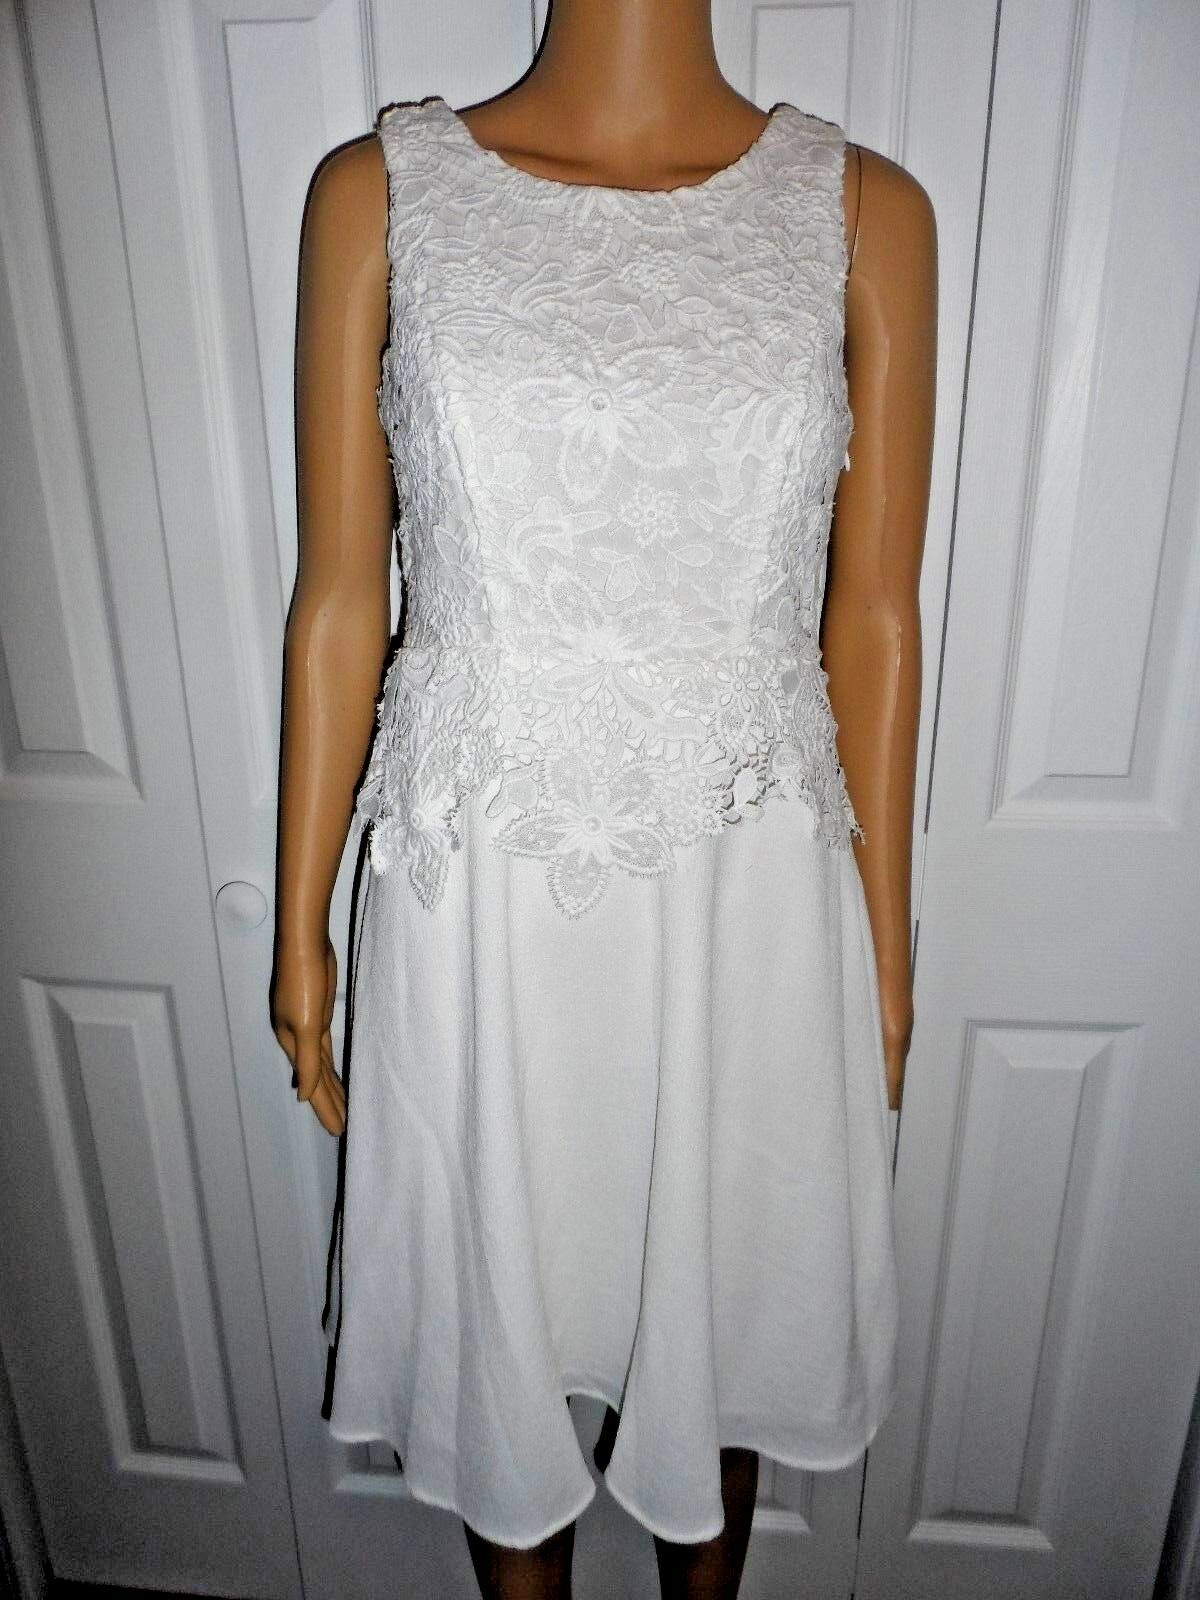 Stunning bluesh black size 4 white with lace fit flare dress ladies women NWT